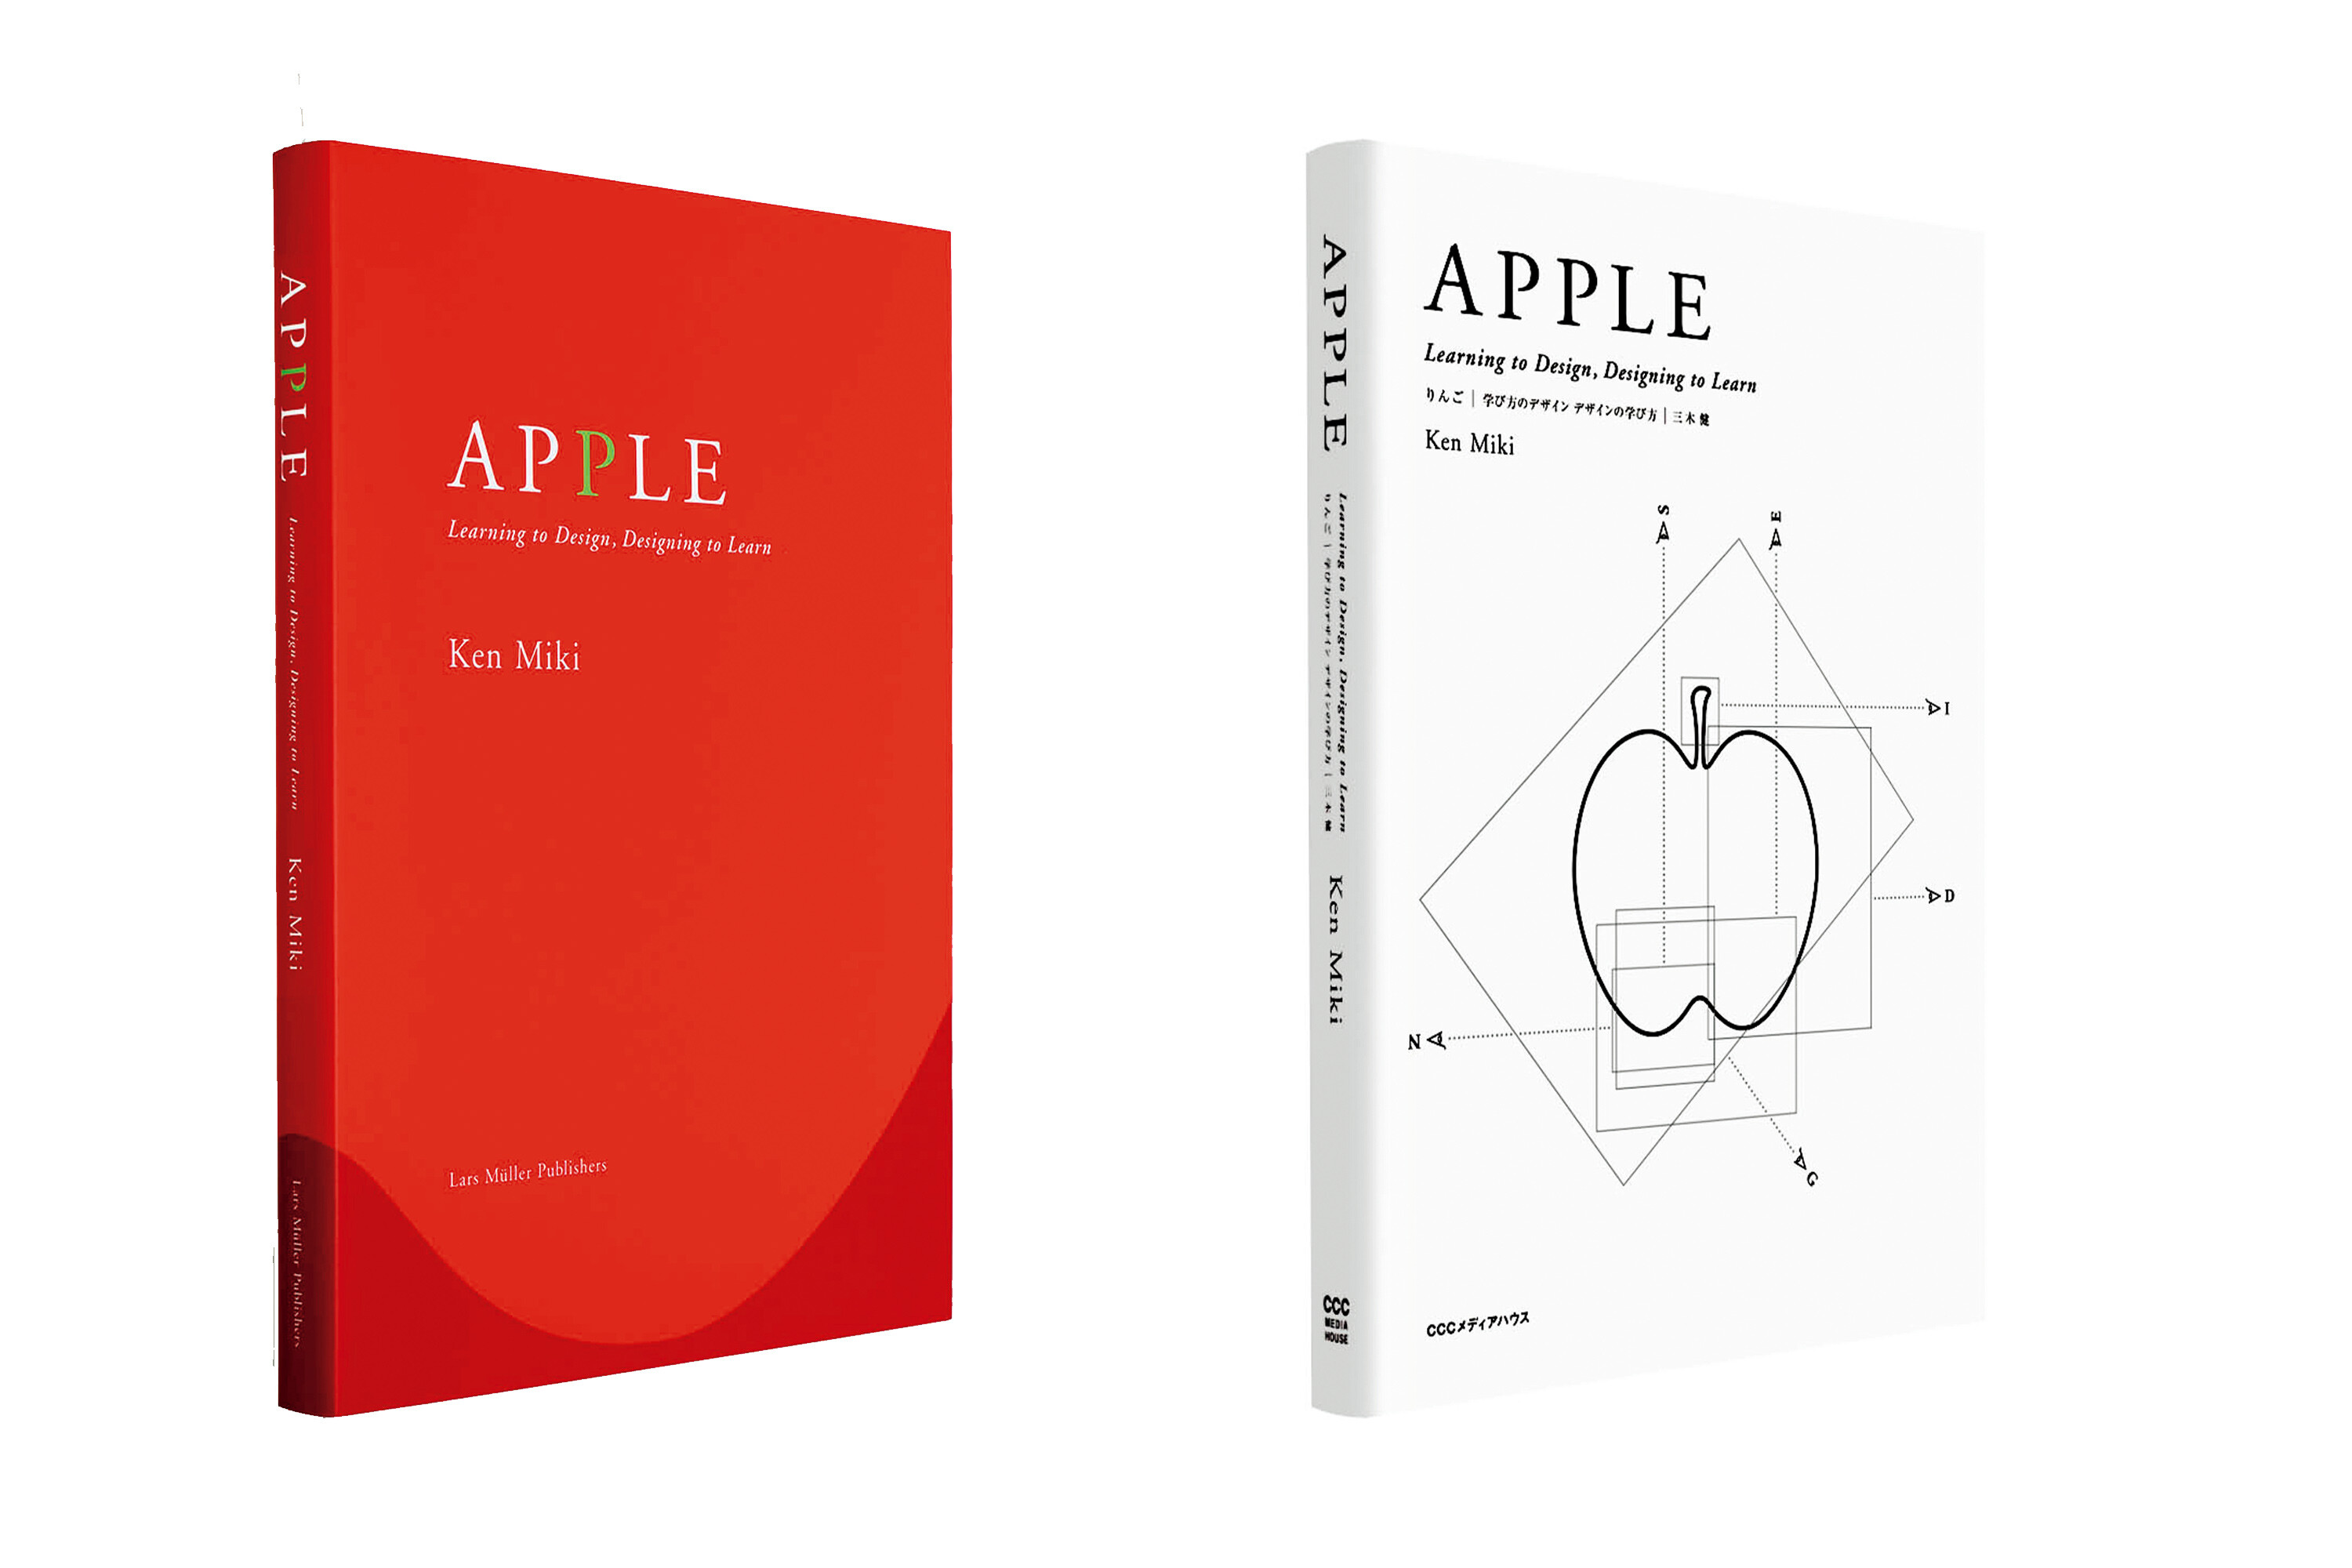 『APPLE Learning to Design, Designing to Learn りんご 学び方のデザイン デザインの学び方』